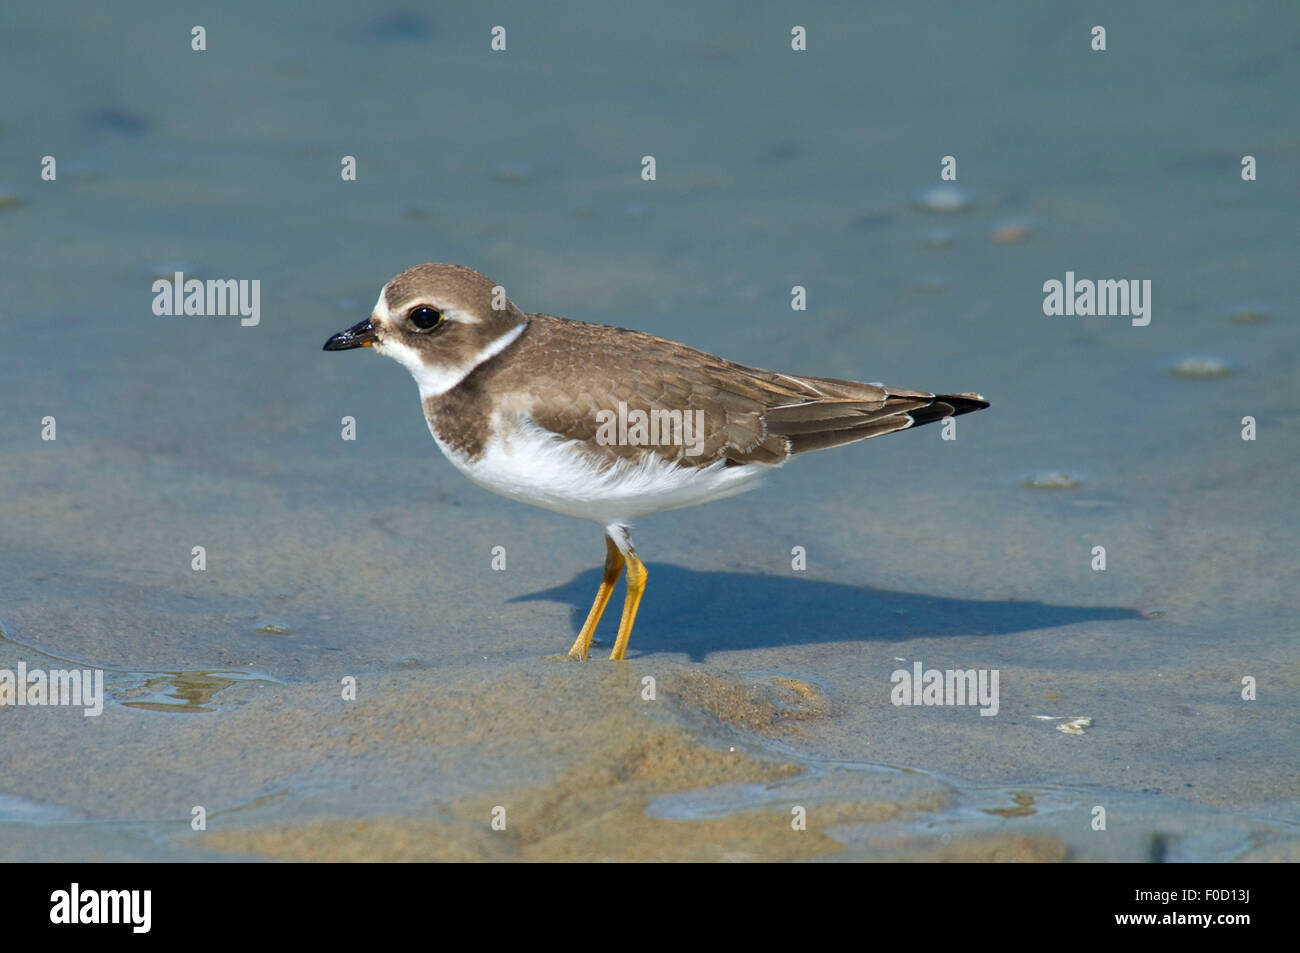 Plover, Wells National Estuarine Research Reserve, Maine - Stock Image